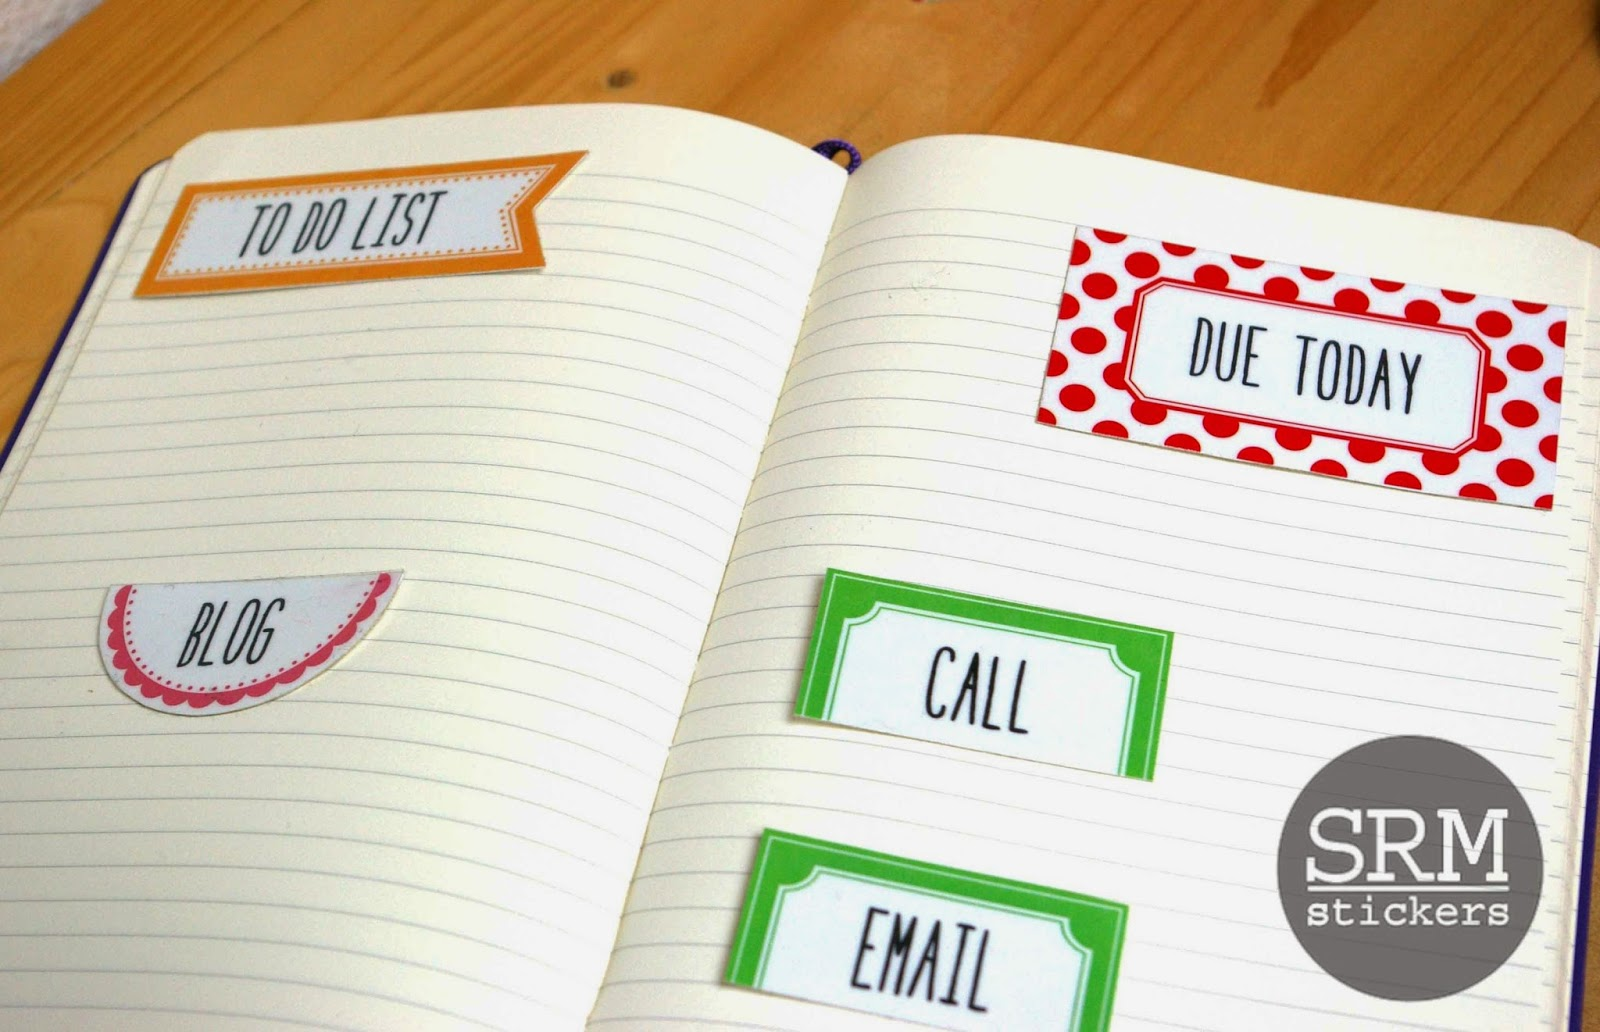 SRM Stickers Blog - Reusable Laminated Planner Tags by Lorena - #planner #labels #stickers #srmpress #srmstickers #DIY